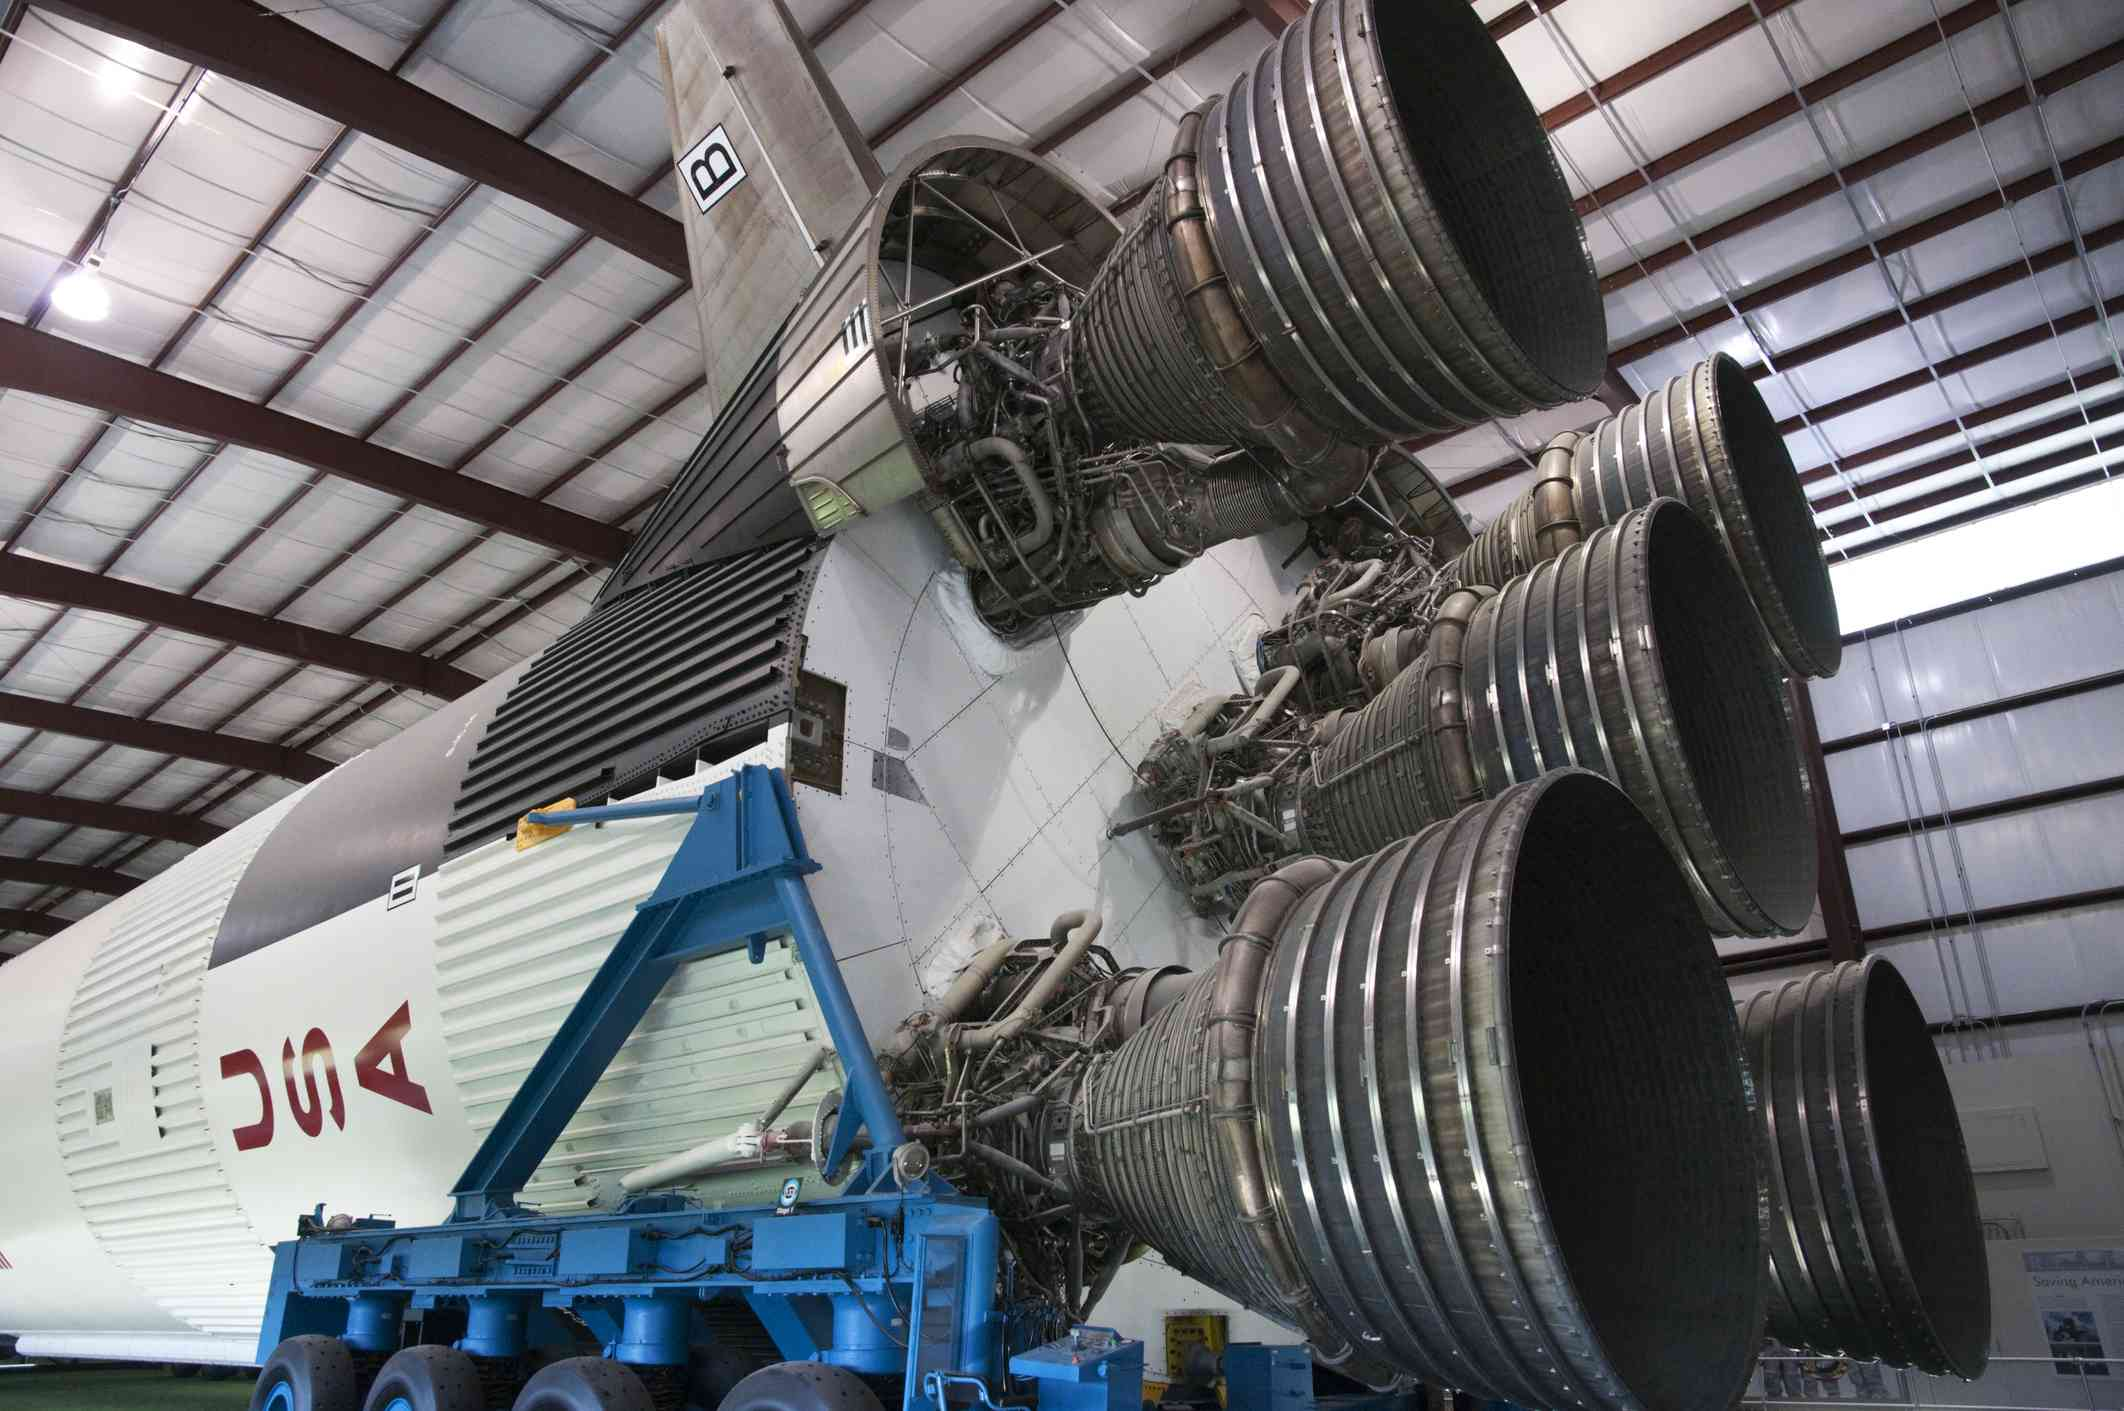 The inside of the Space Center in Houston